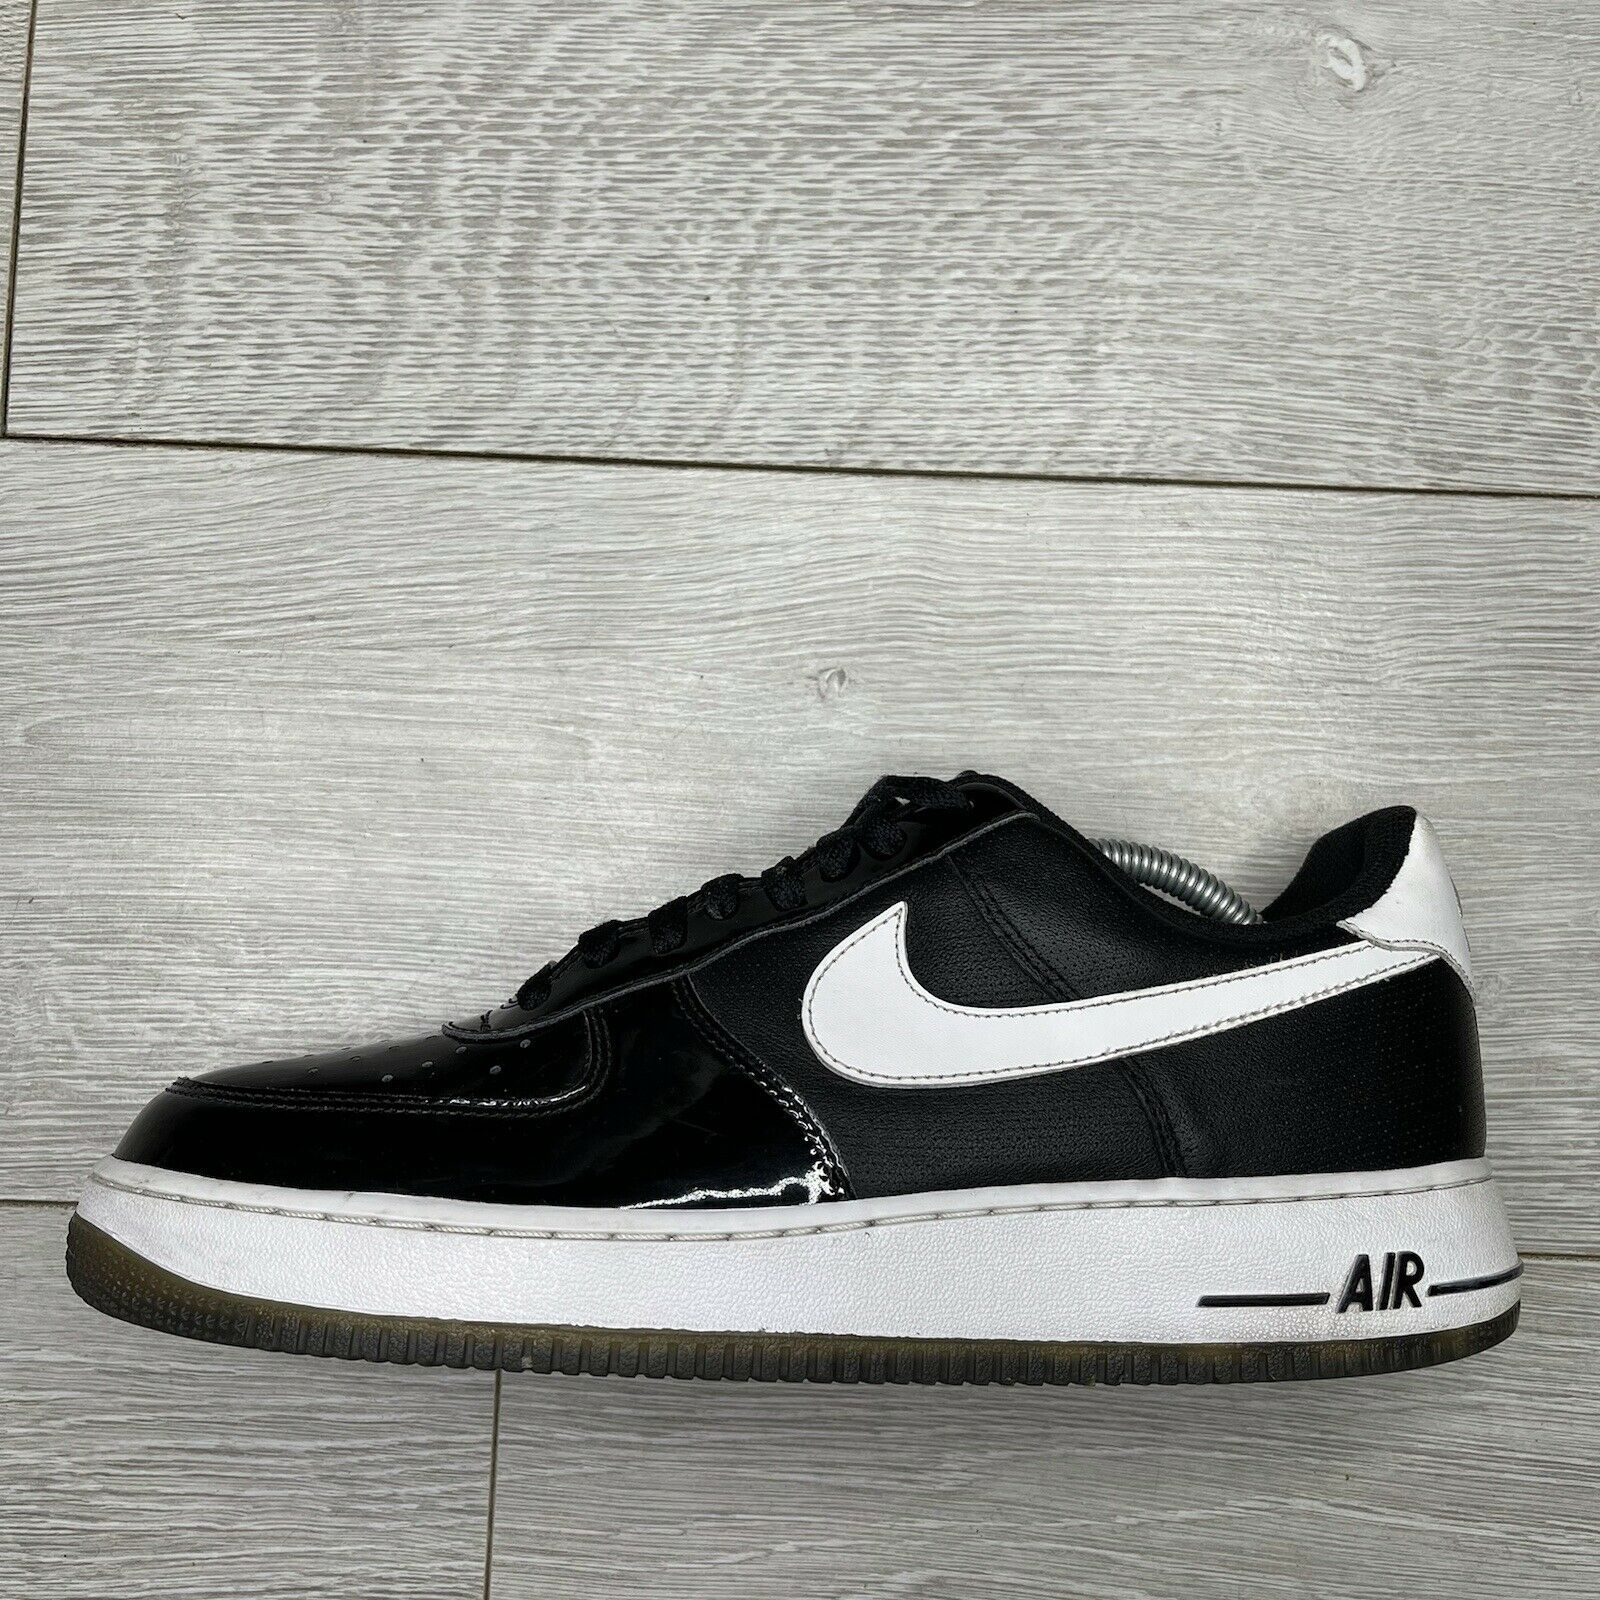 Nike Air Force 1 Black Patent Leather Trainers Size UK 10 EU 45 US 11